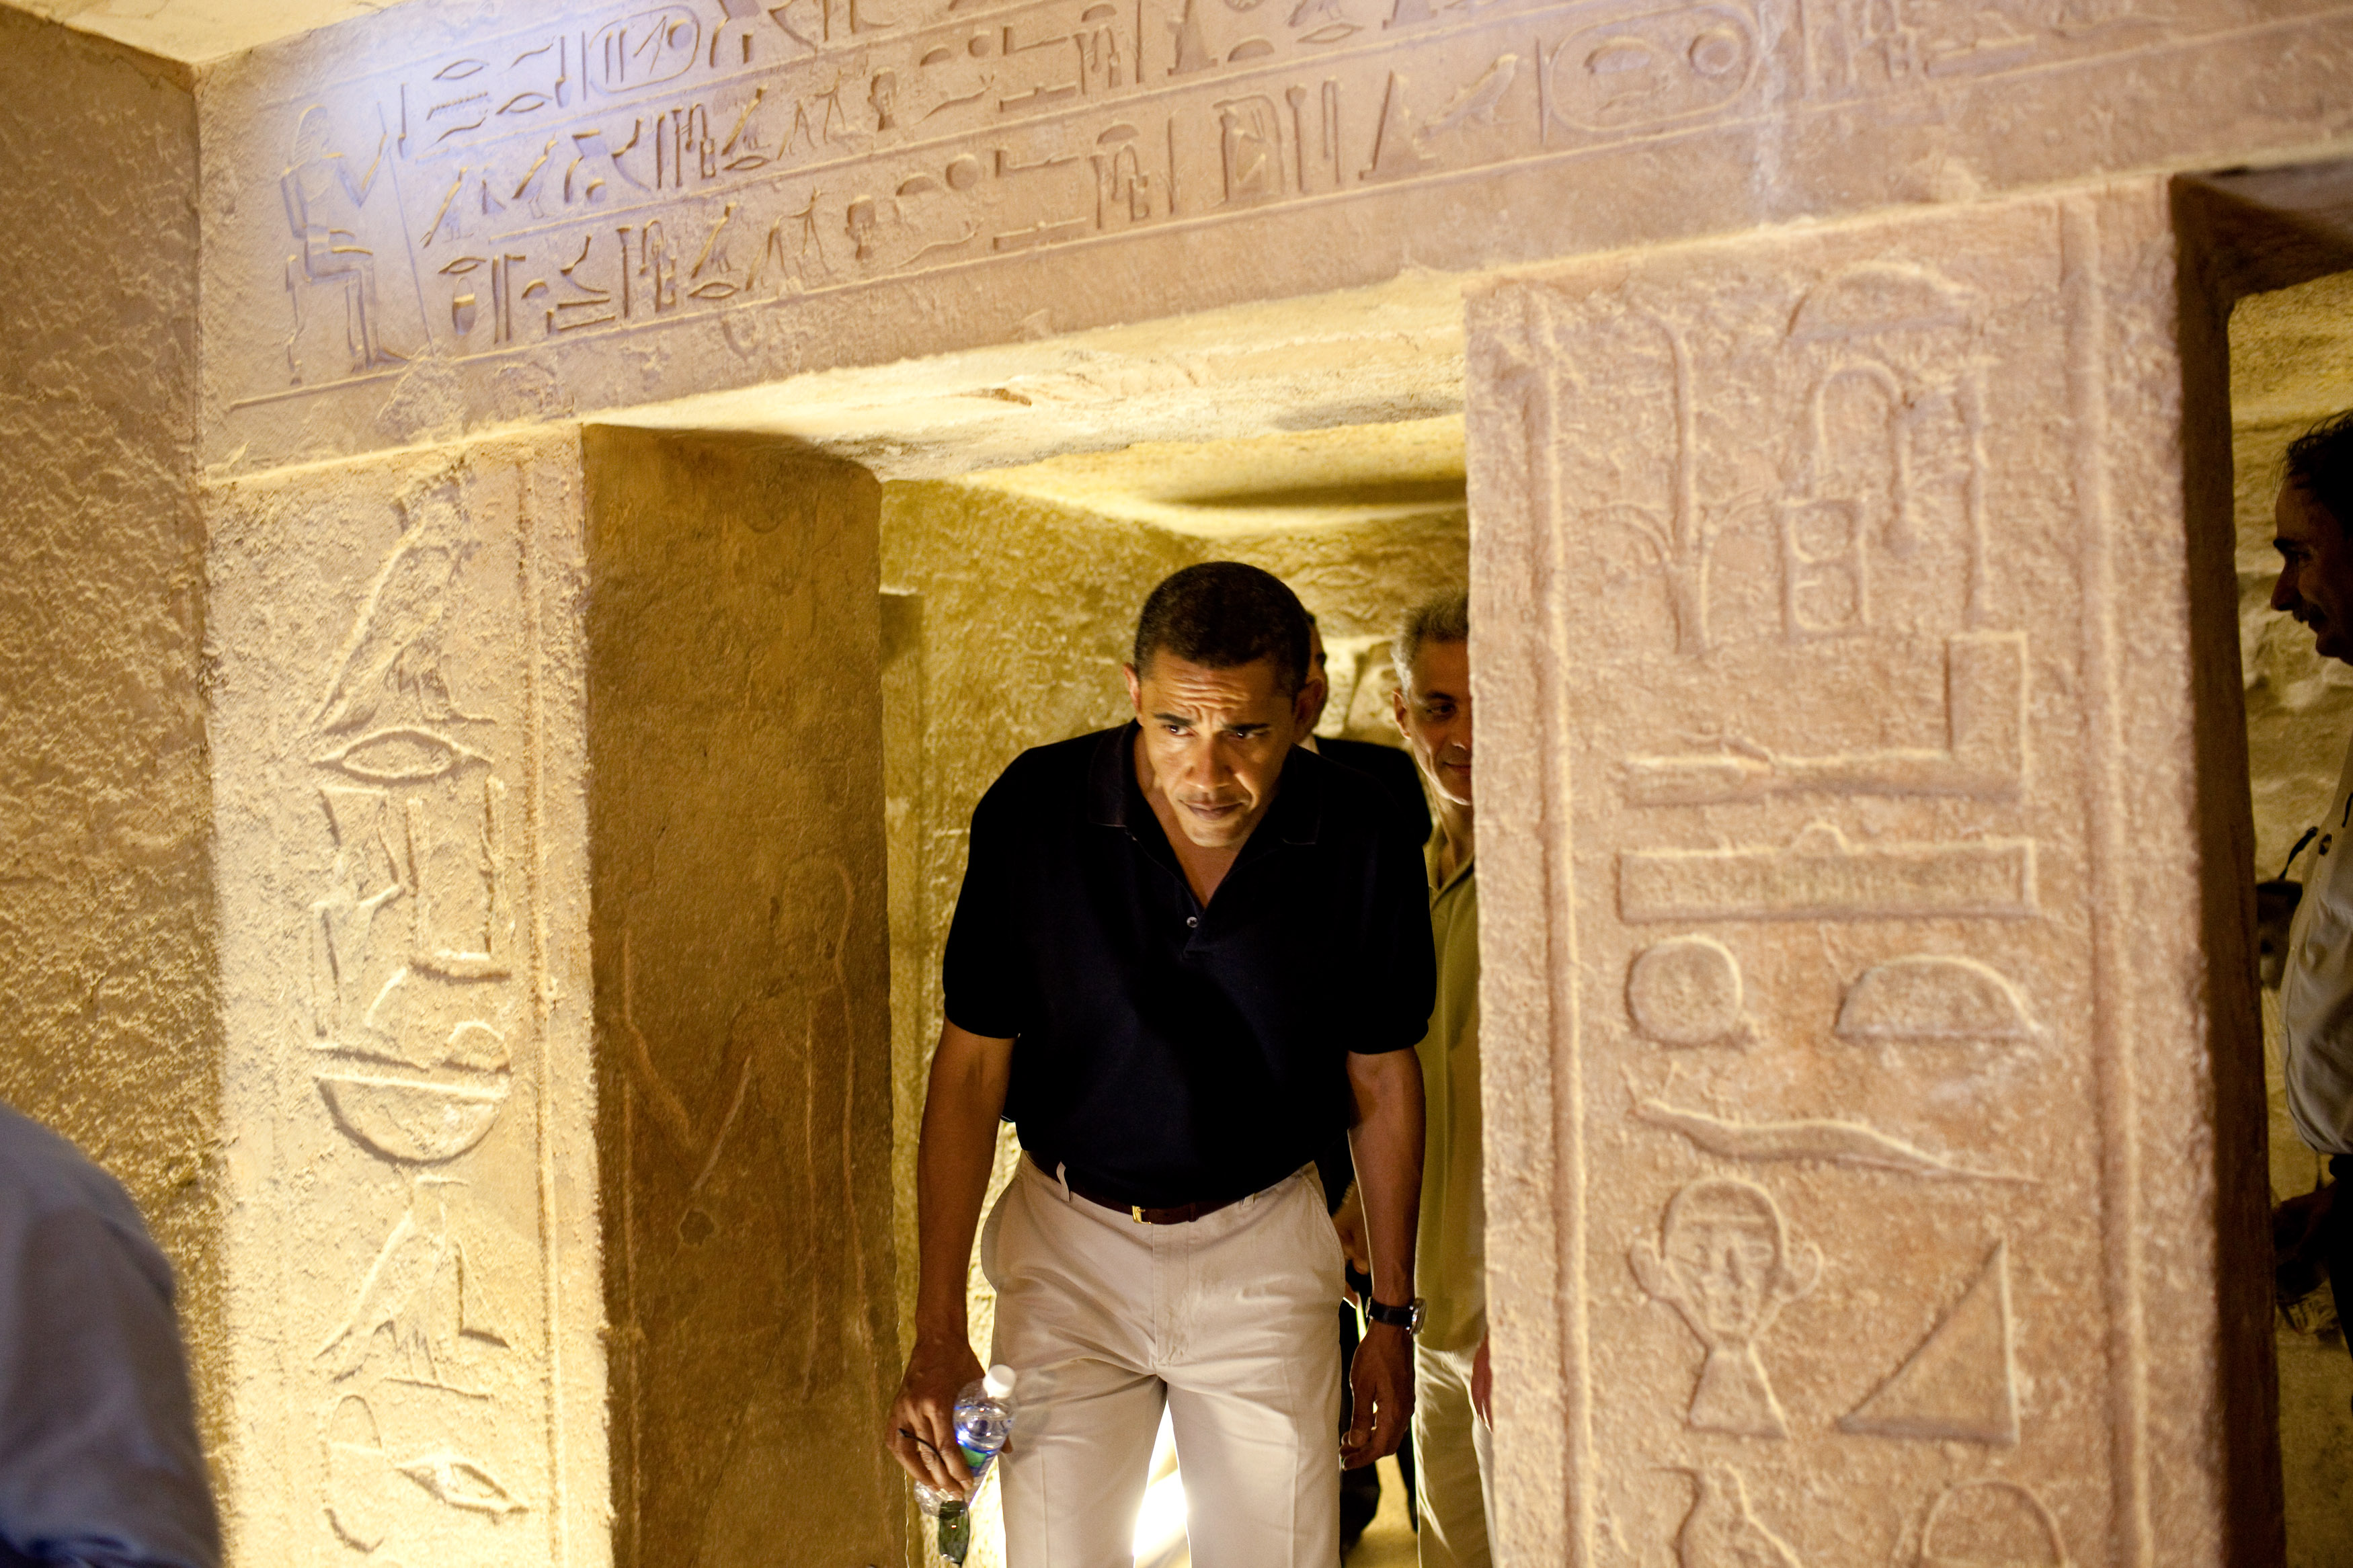 http://upload.wikimedia.org/wikipedia/commons/3/3b/Barack_Obama_with_lookalike_Egyptian_hieroglyphic.jpg